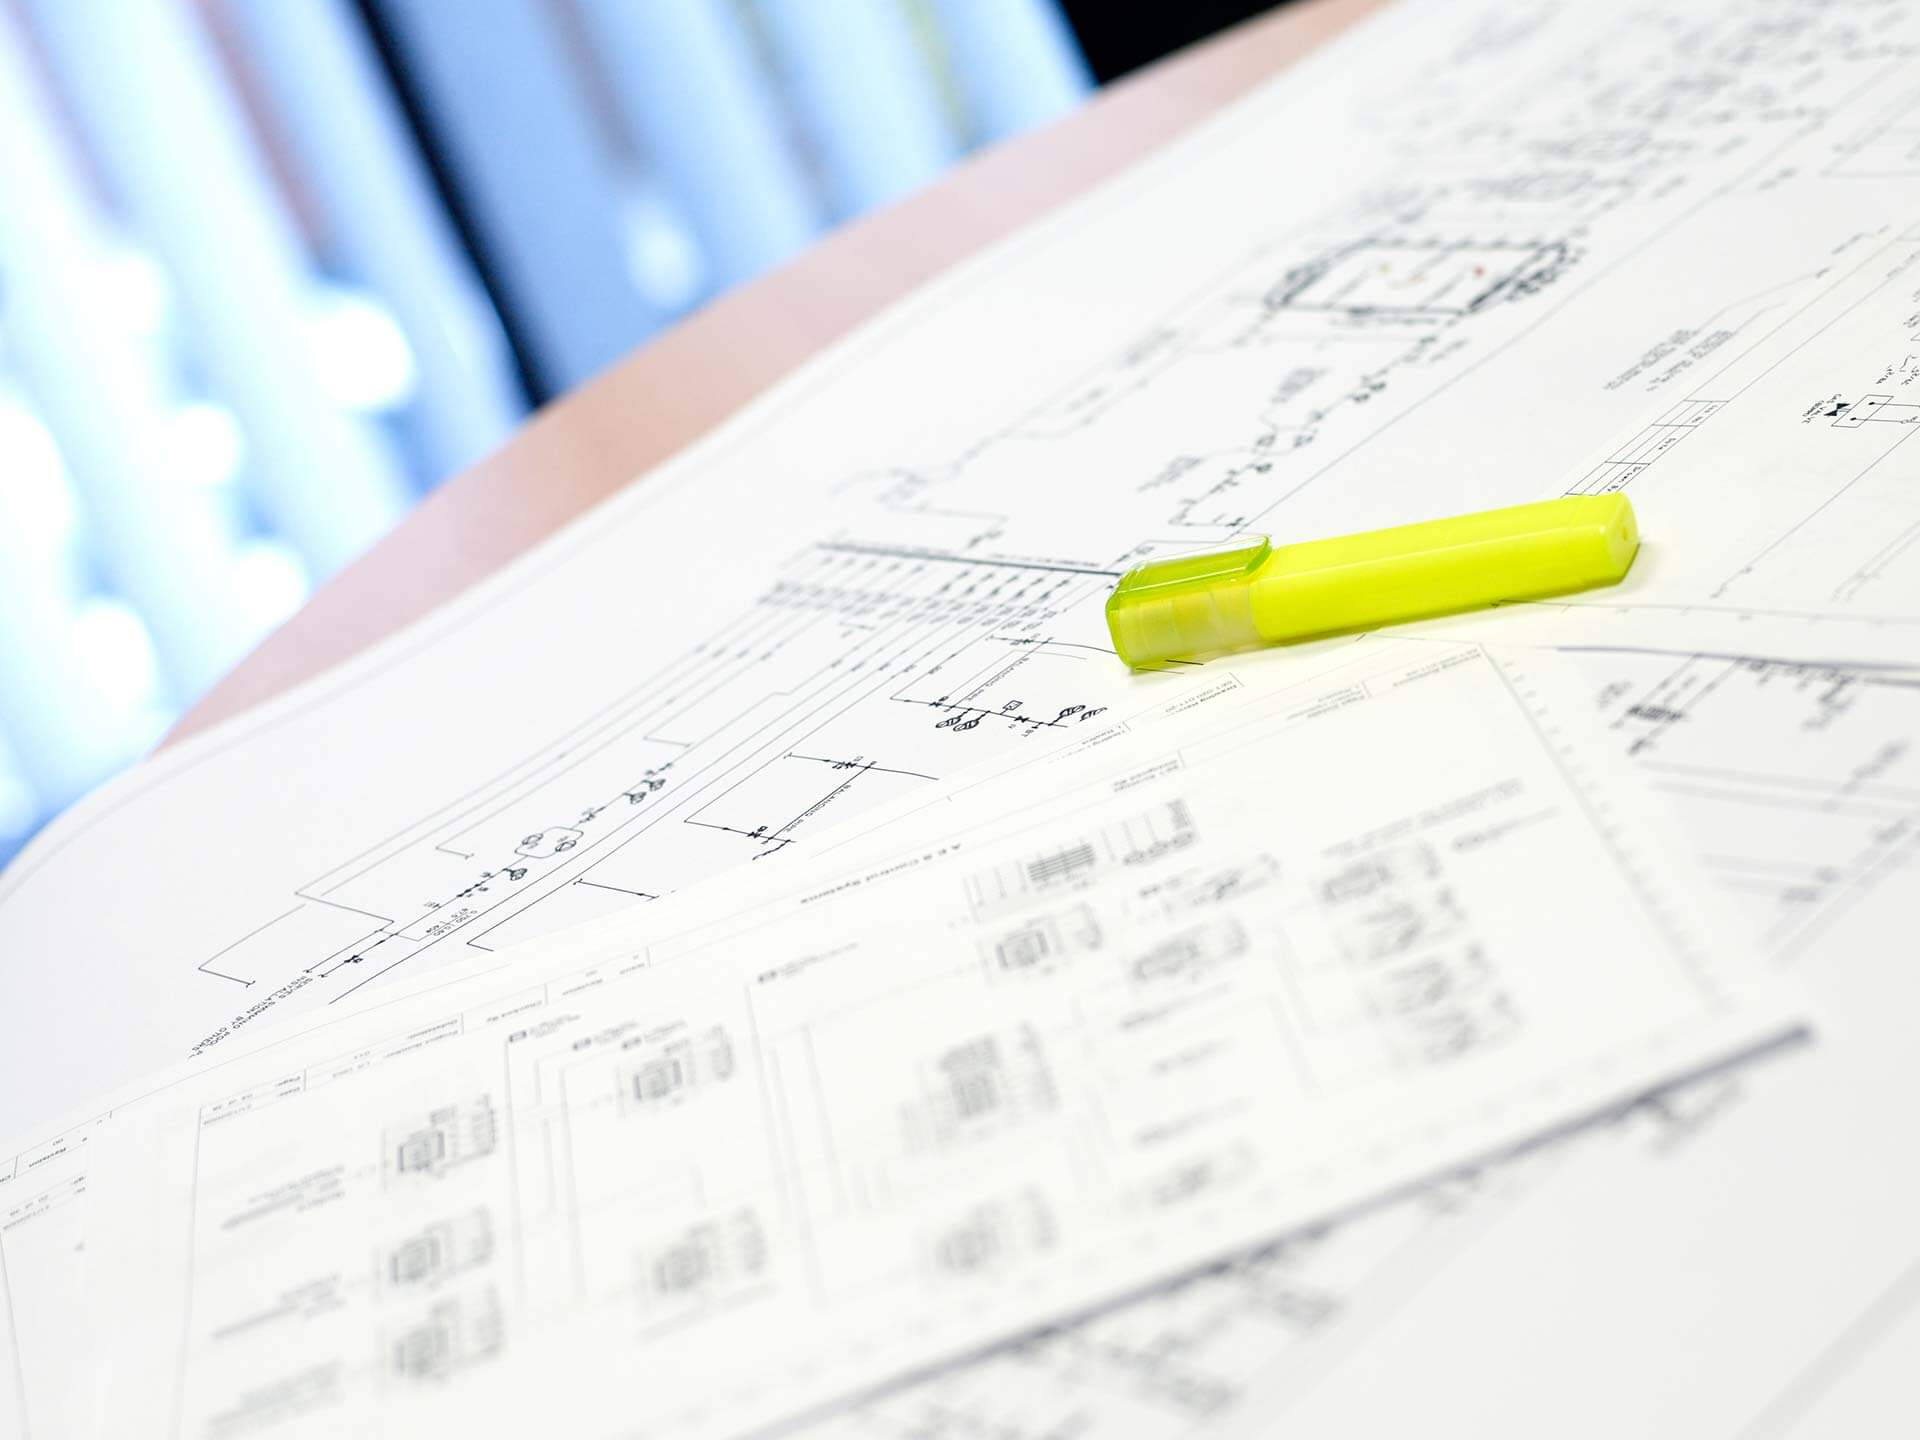 hight resolution of building management systems drawings